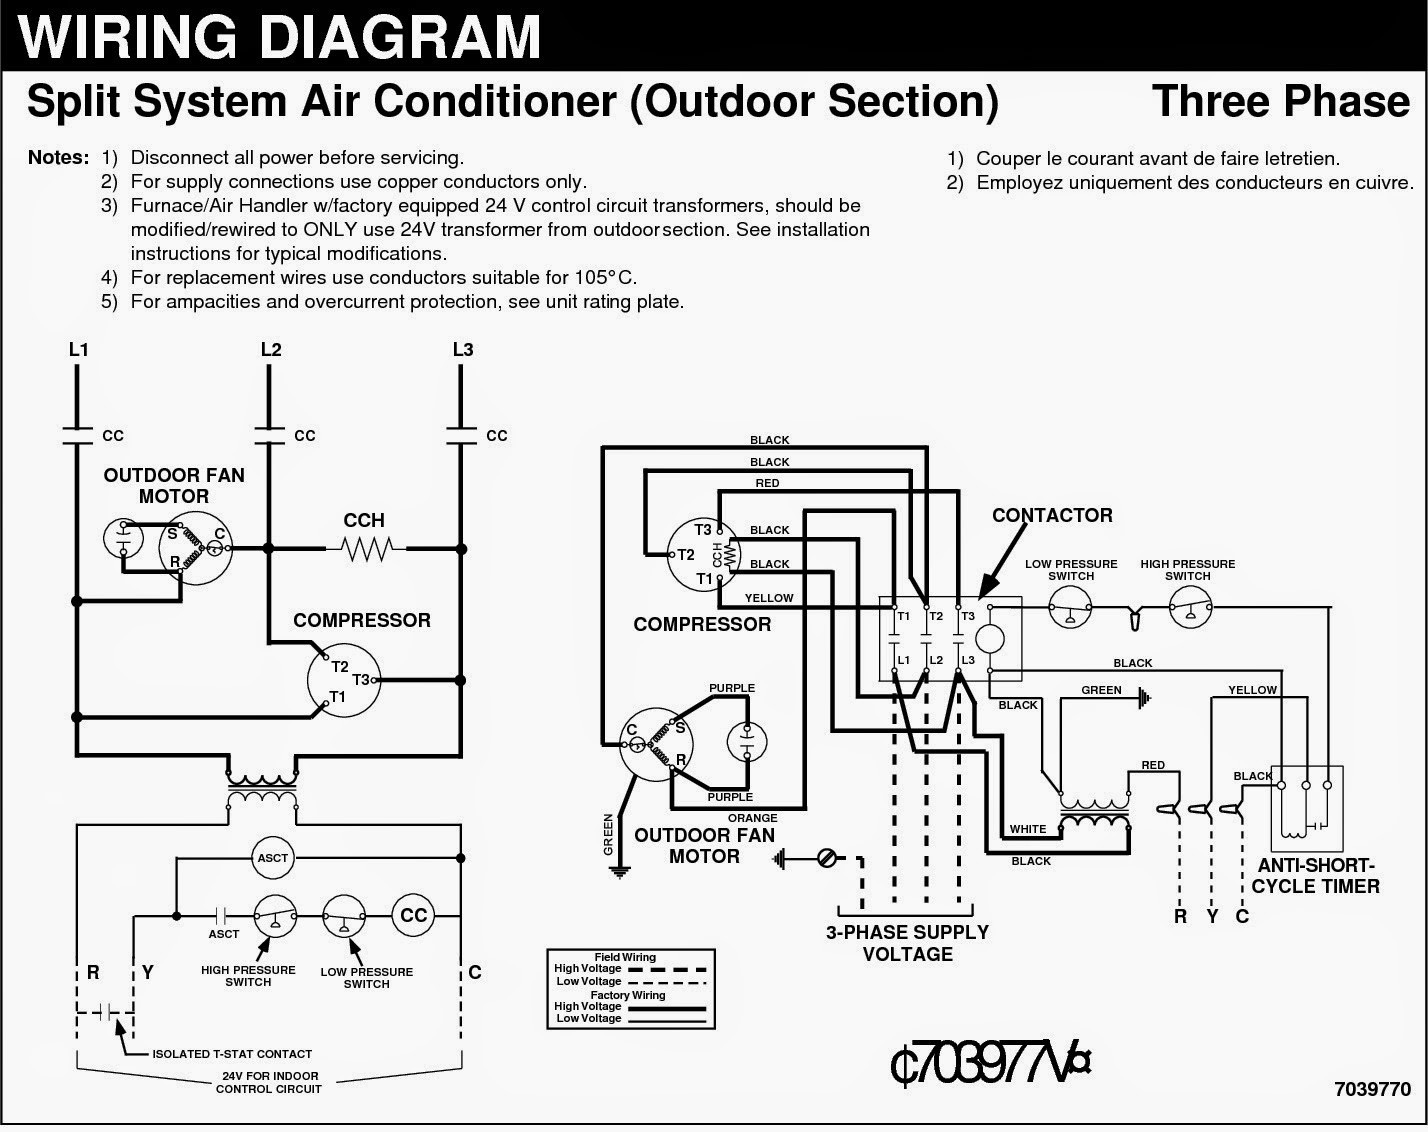 Danfoss Type Hsa3 Wiring Diagram